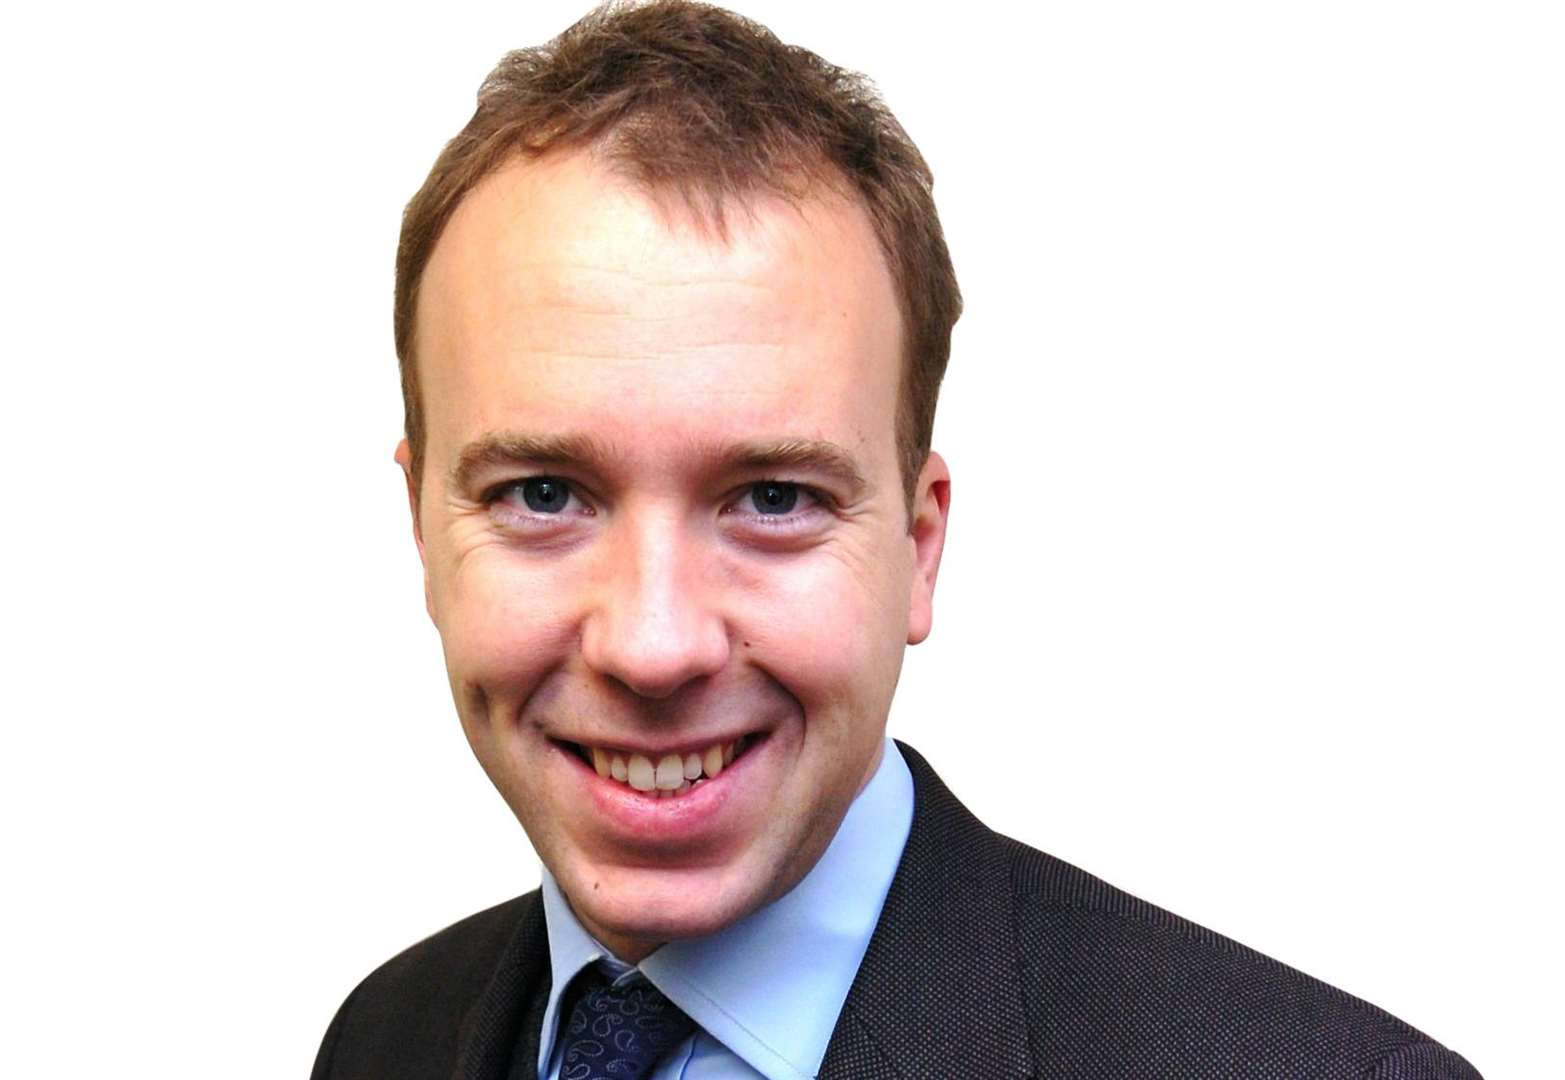 West Suffolk MP Matt Hancock appointed Health Secretary